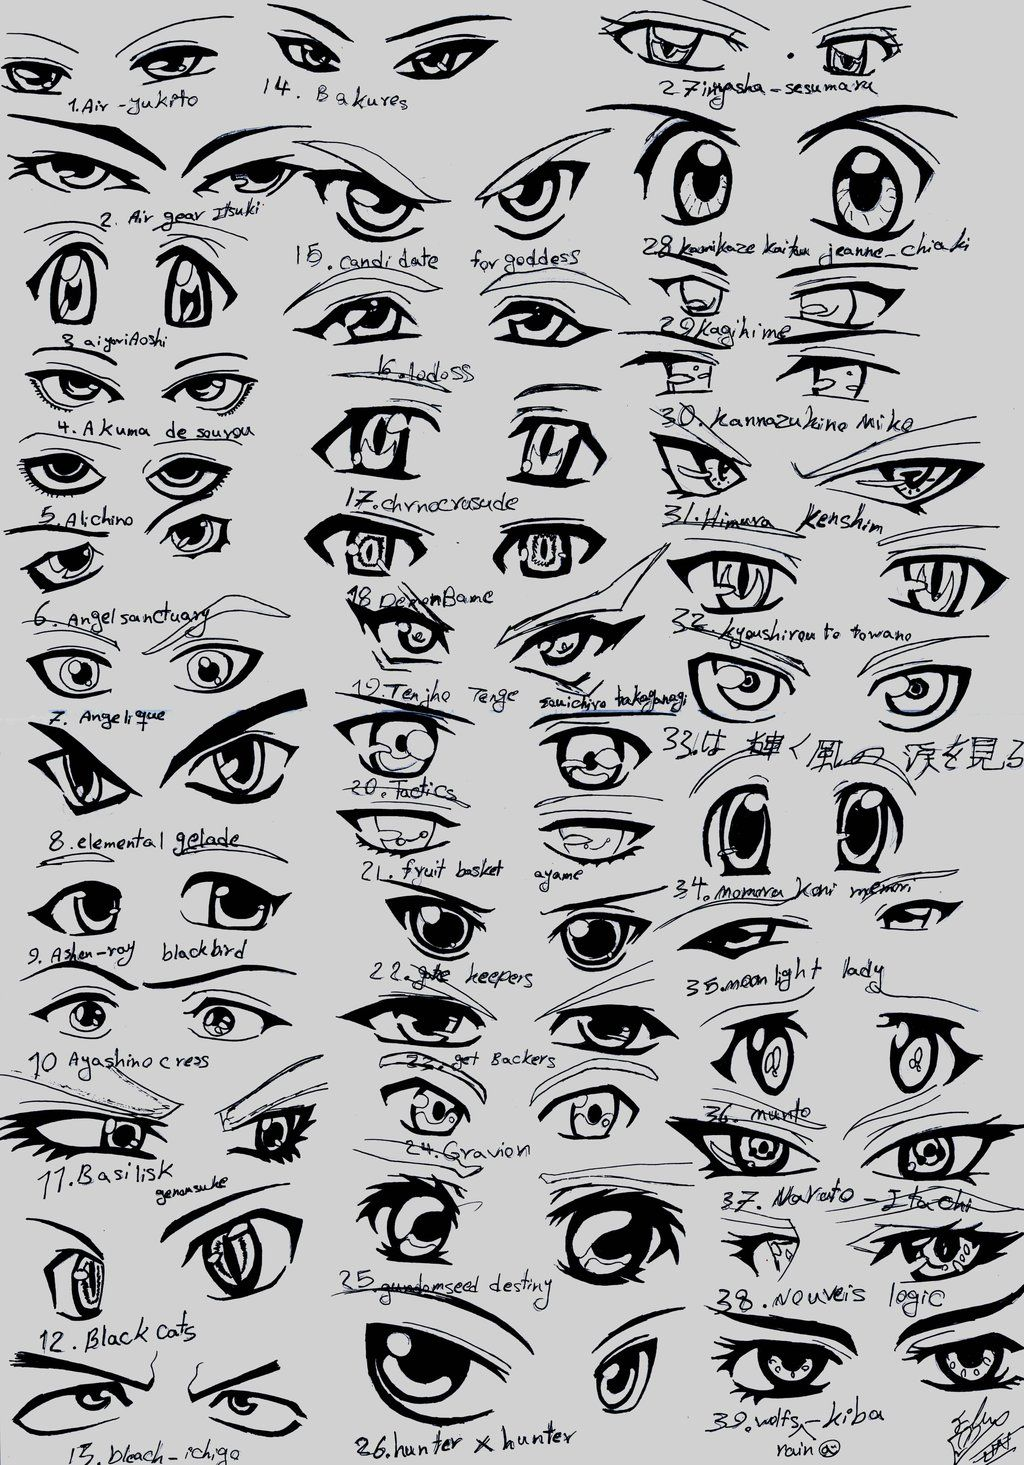 39 Male Anime Eyes By Eliantart Deviantart Com How To Draw Anime